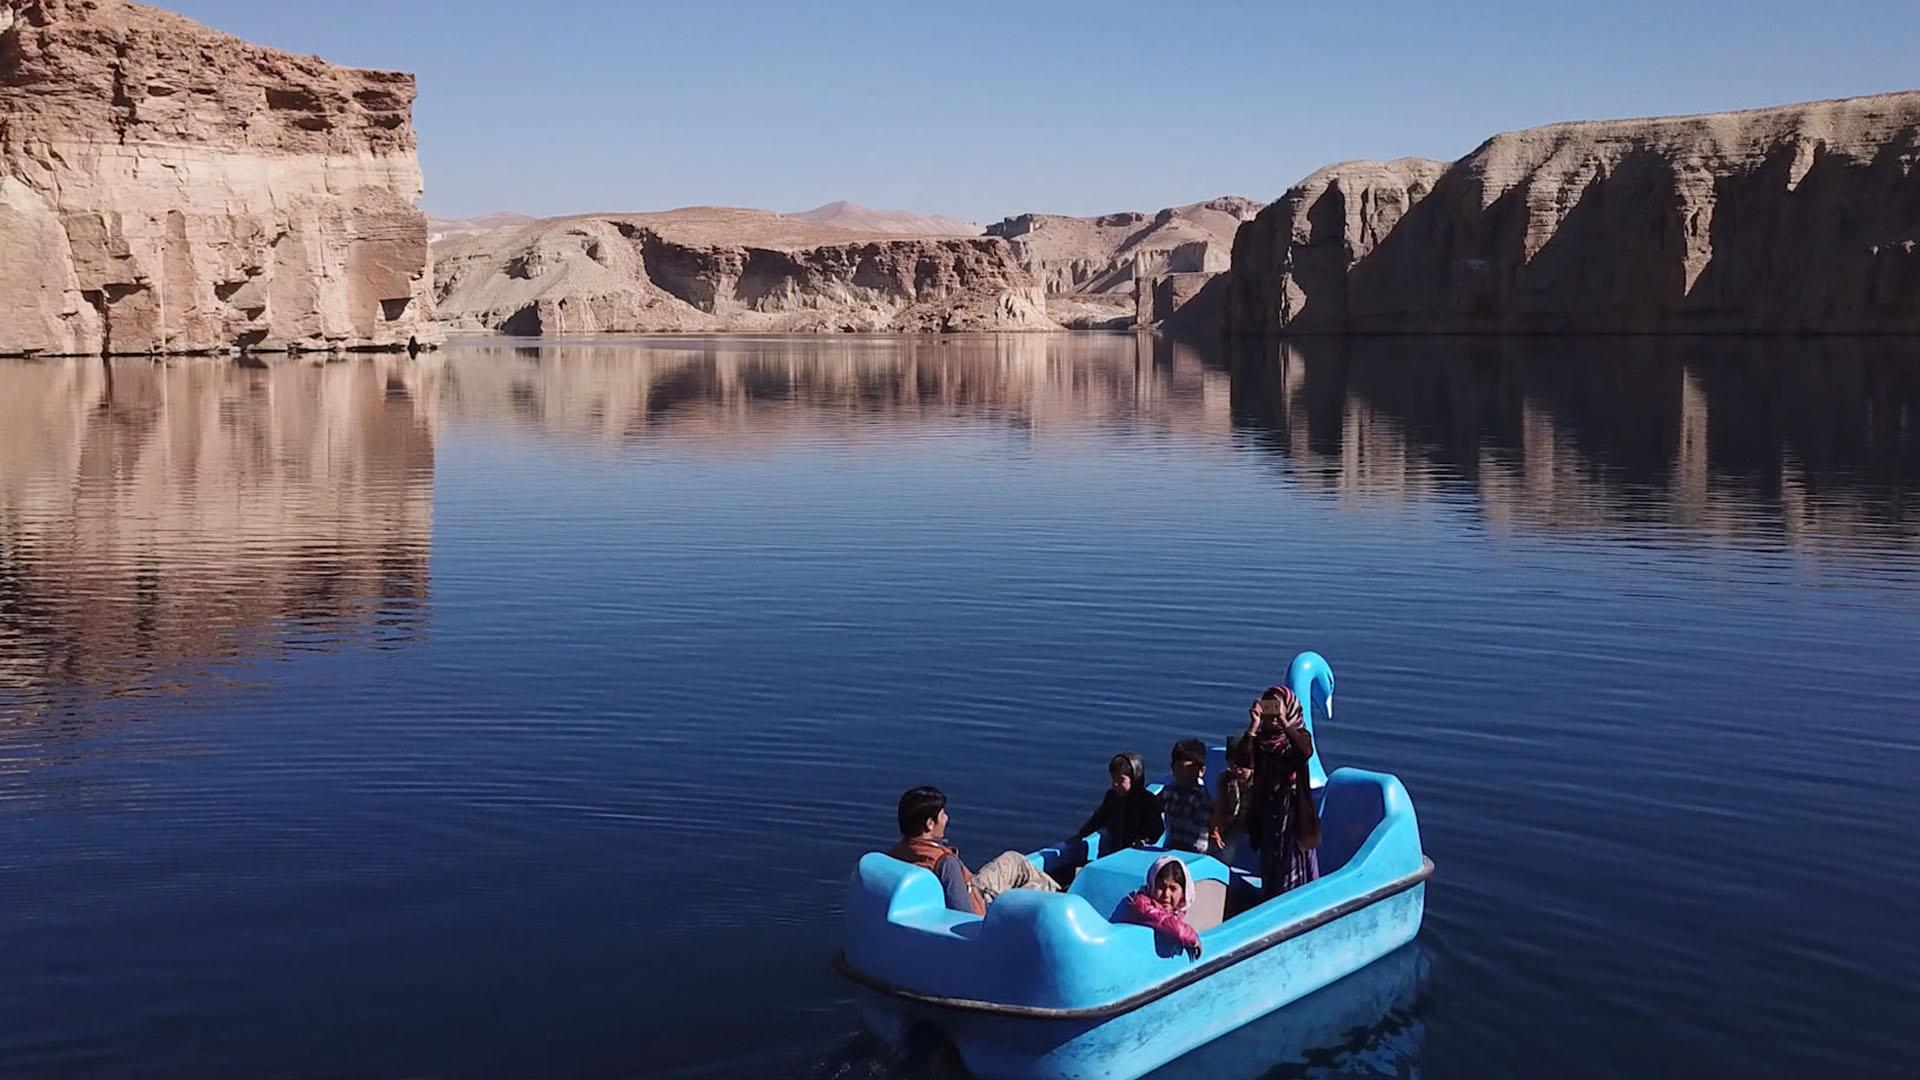 Band E Amir National Park Used To Promote Tourism To